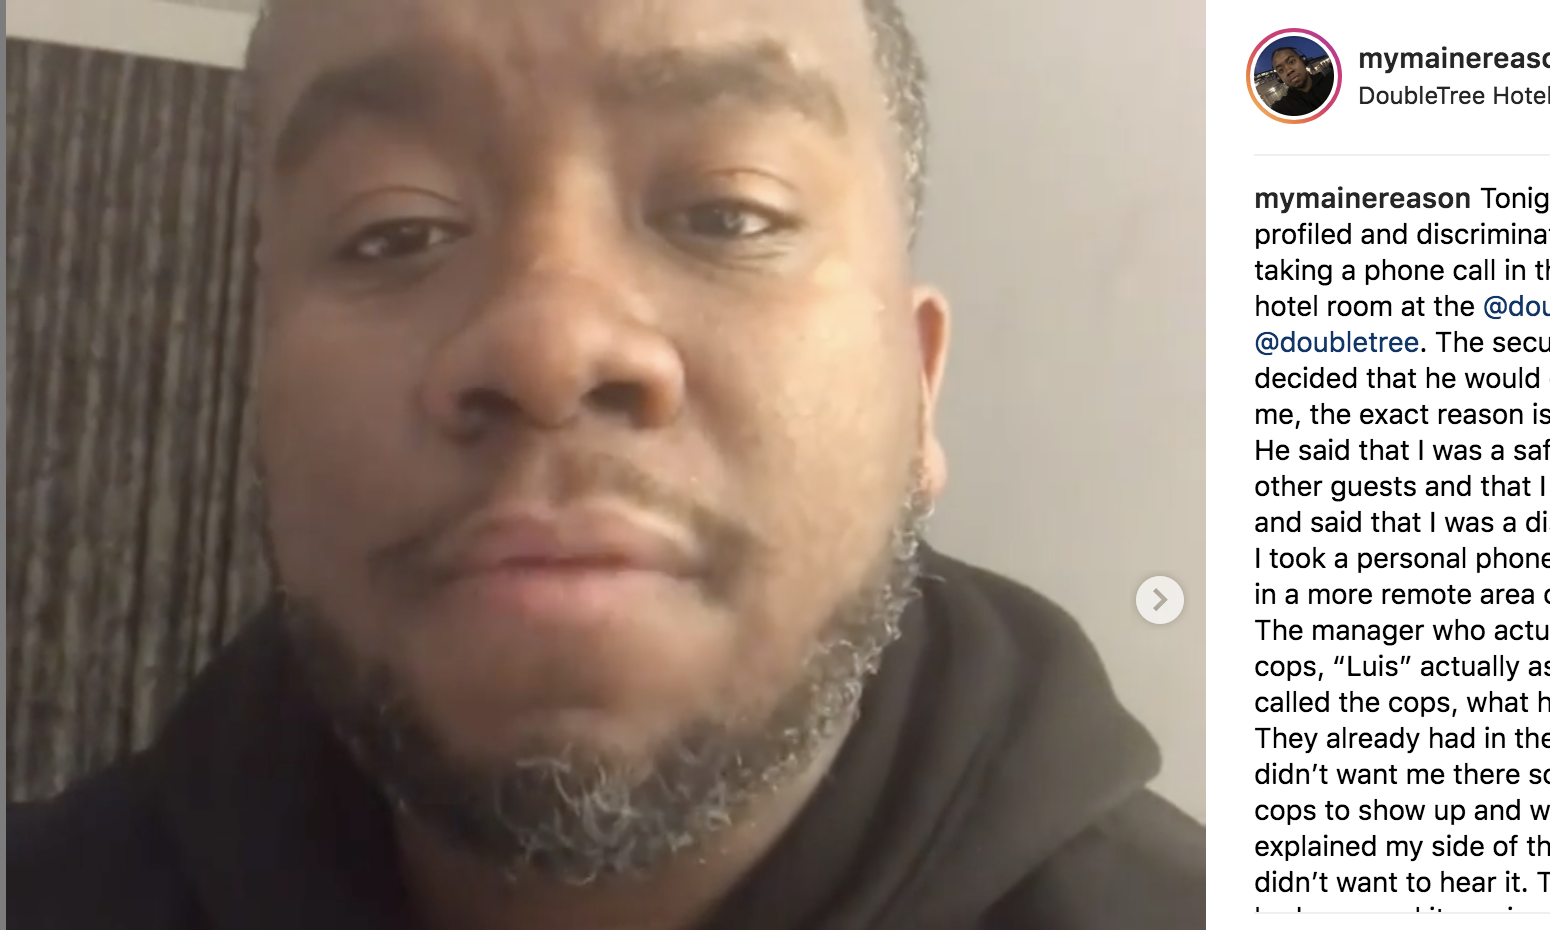 Jermaine Massey posted a series of videos on Instagram explaining the incident that took place at a hotel in Portland, Oregon on Dec. 23, 2018.